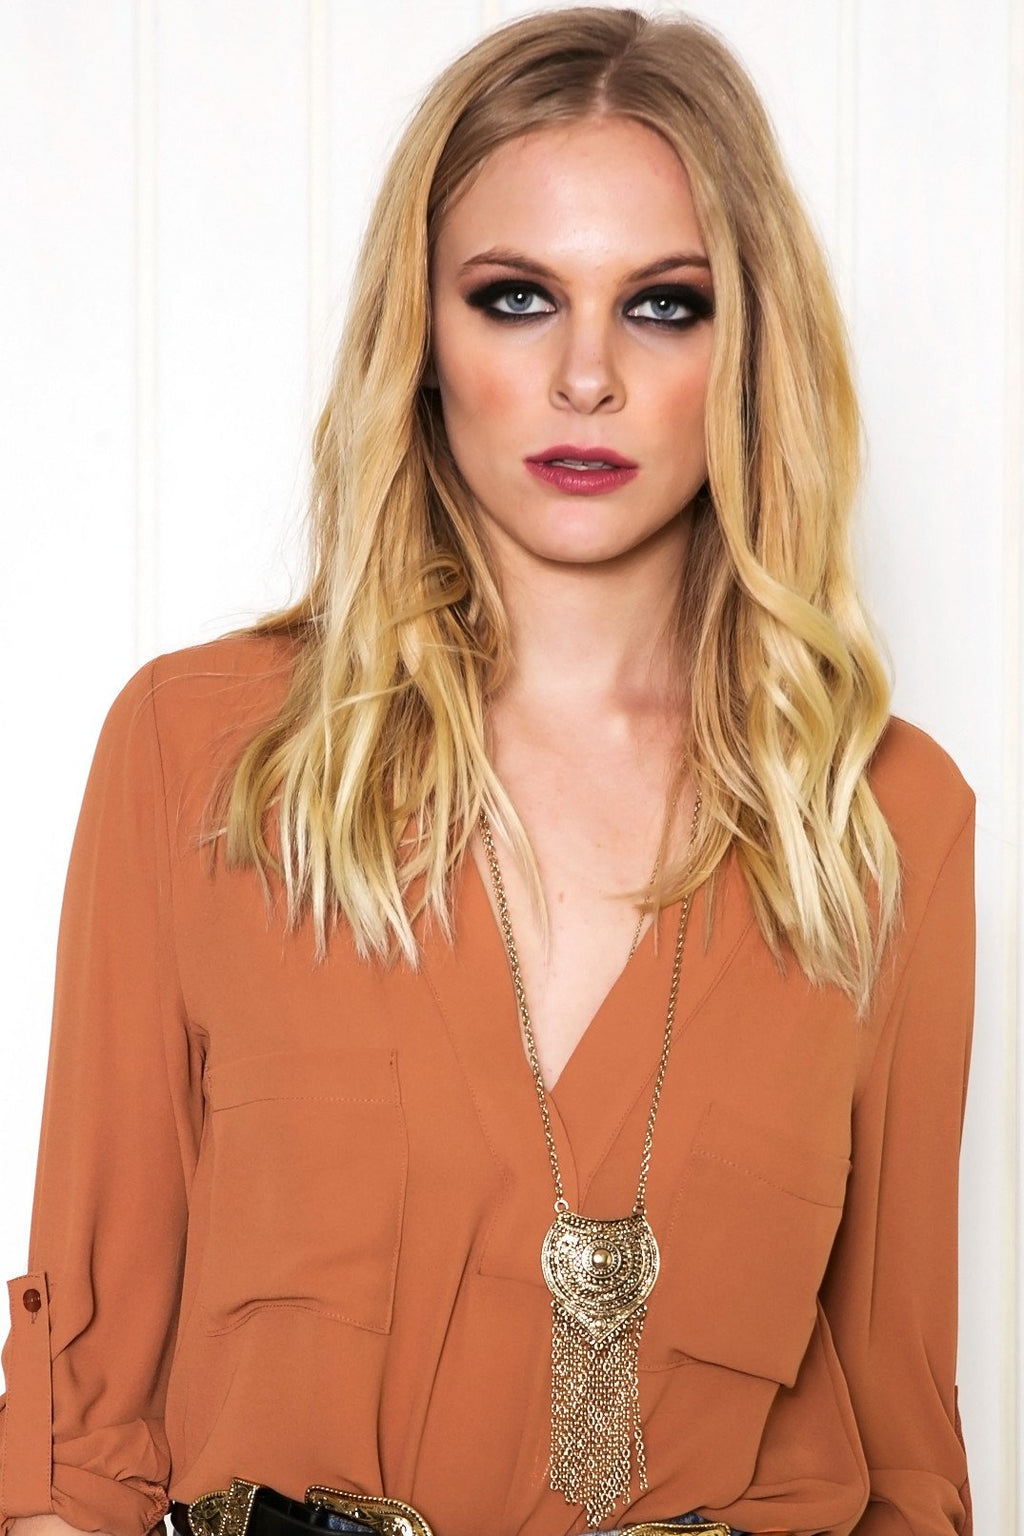 Karin Fringe Pendant Necklace - Haute & Rebellious